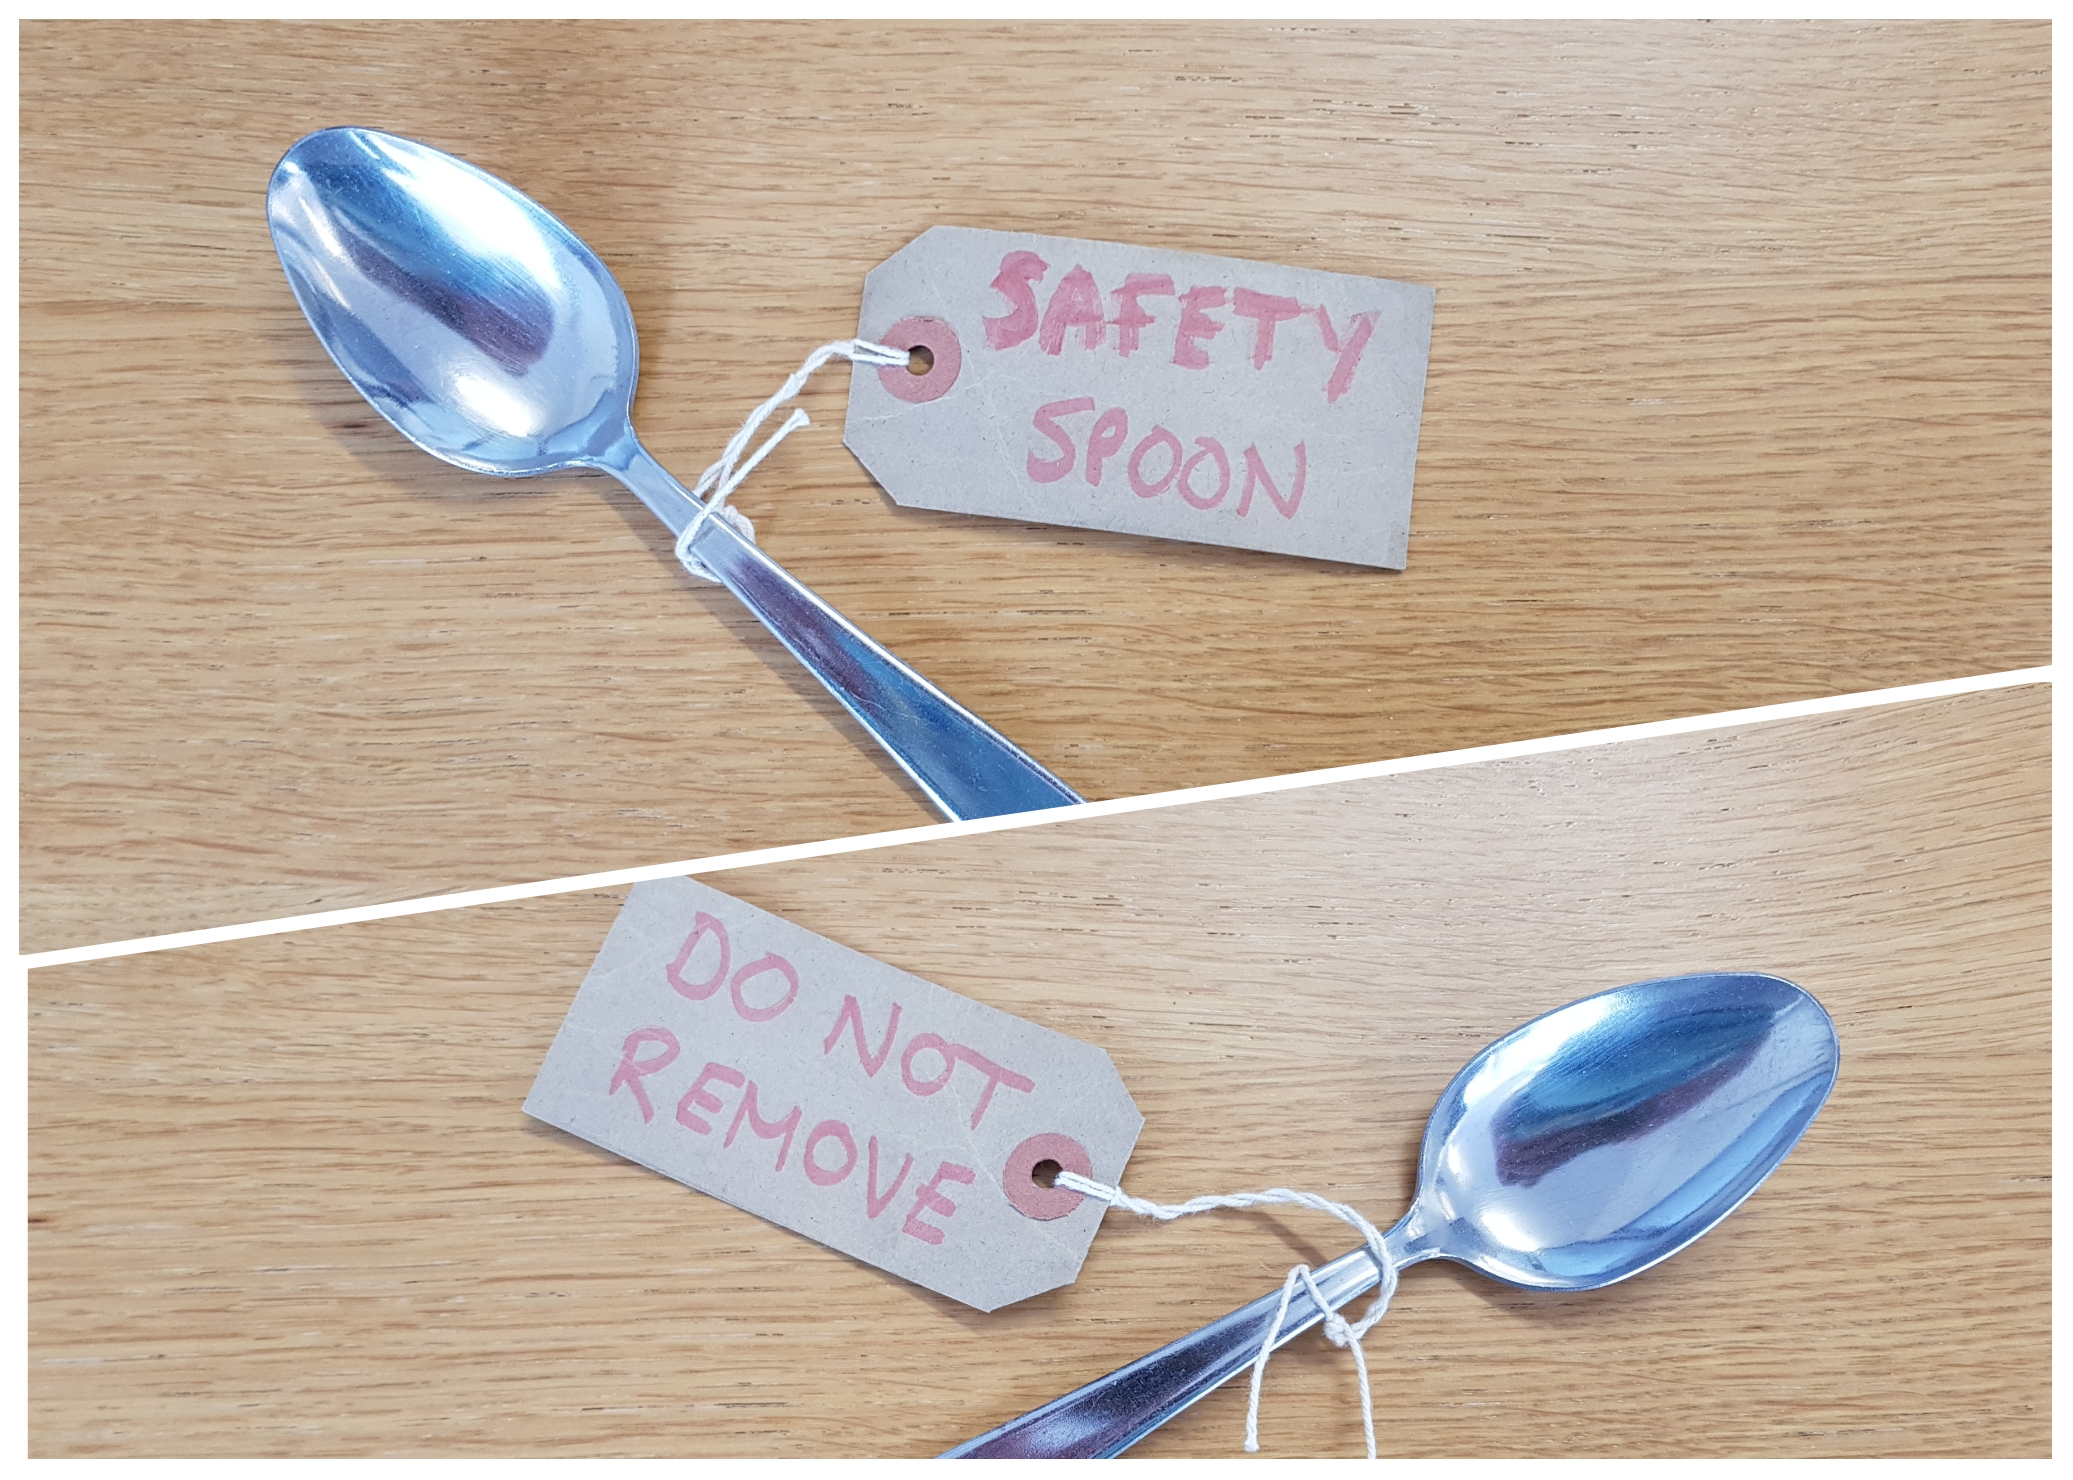 Safety Spoon! Do not remove!